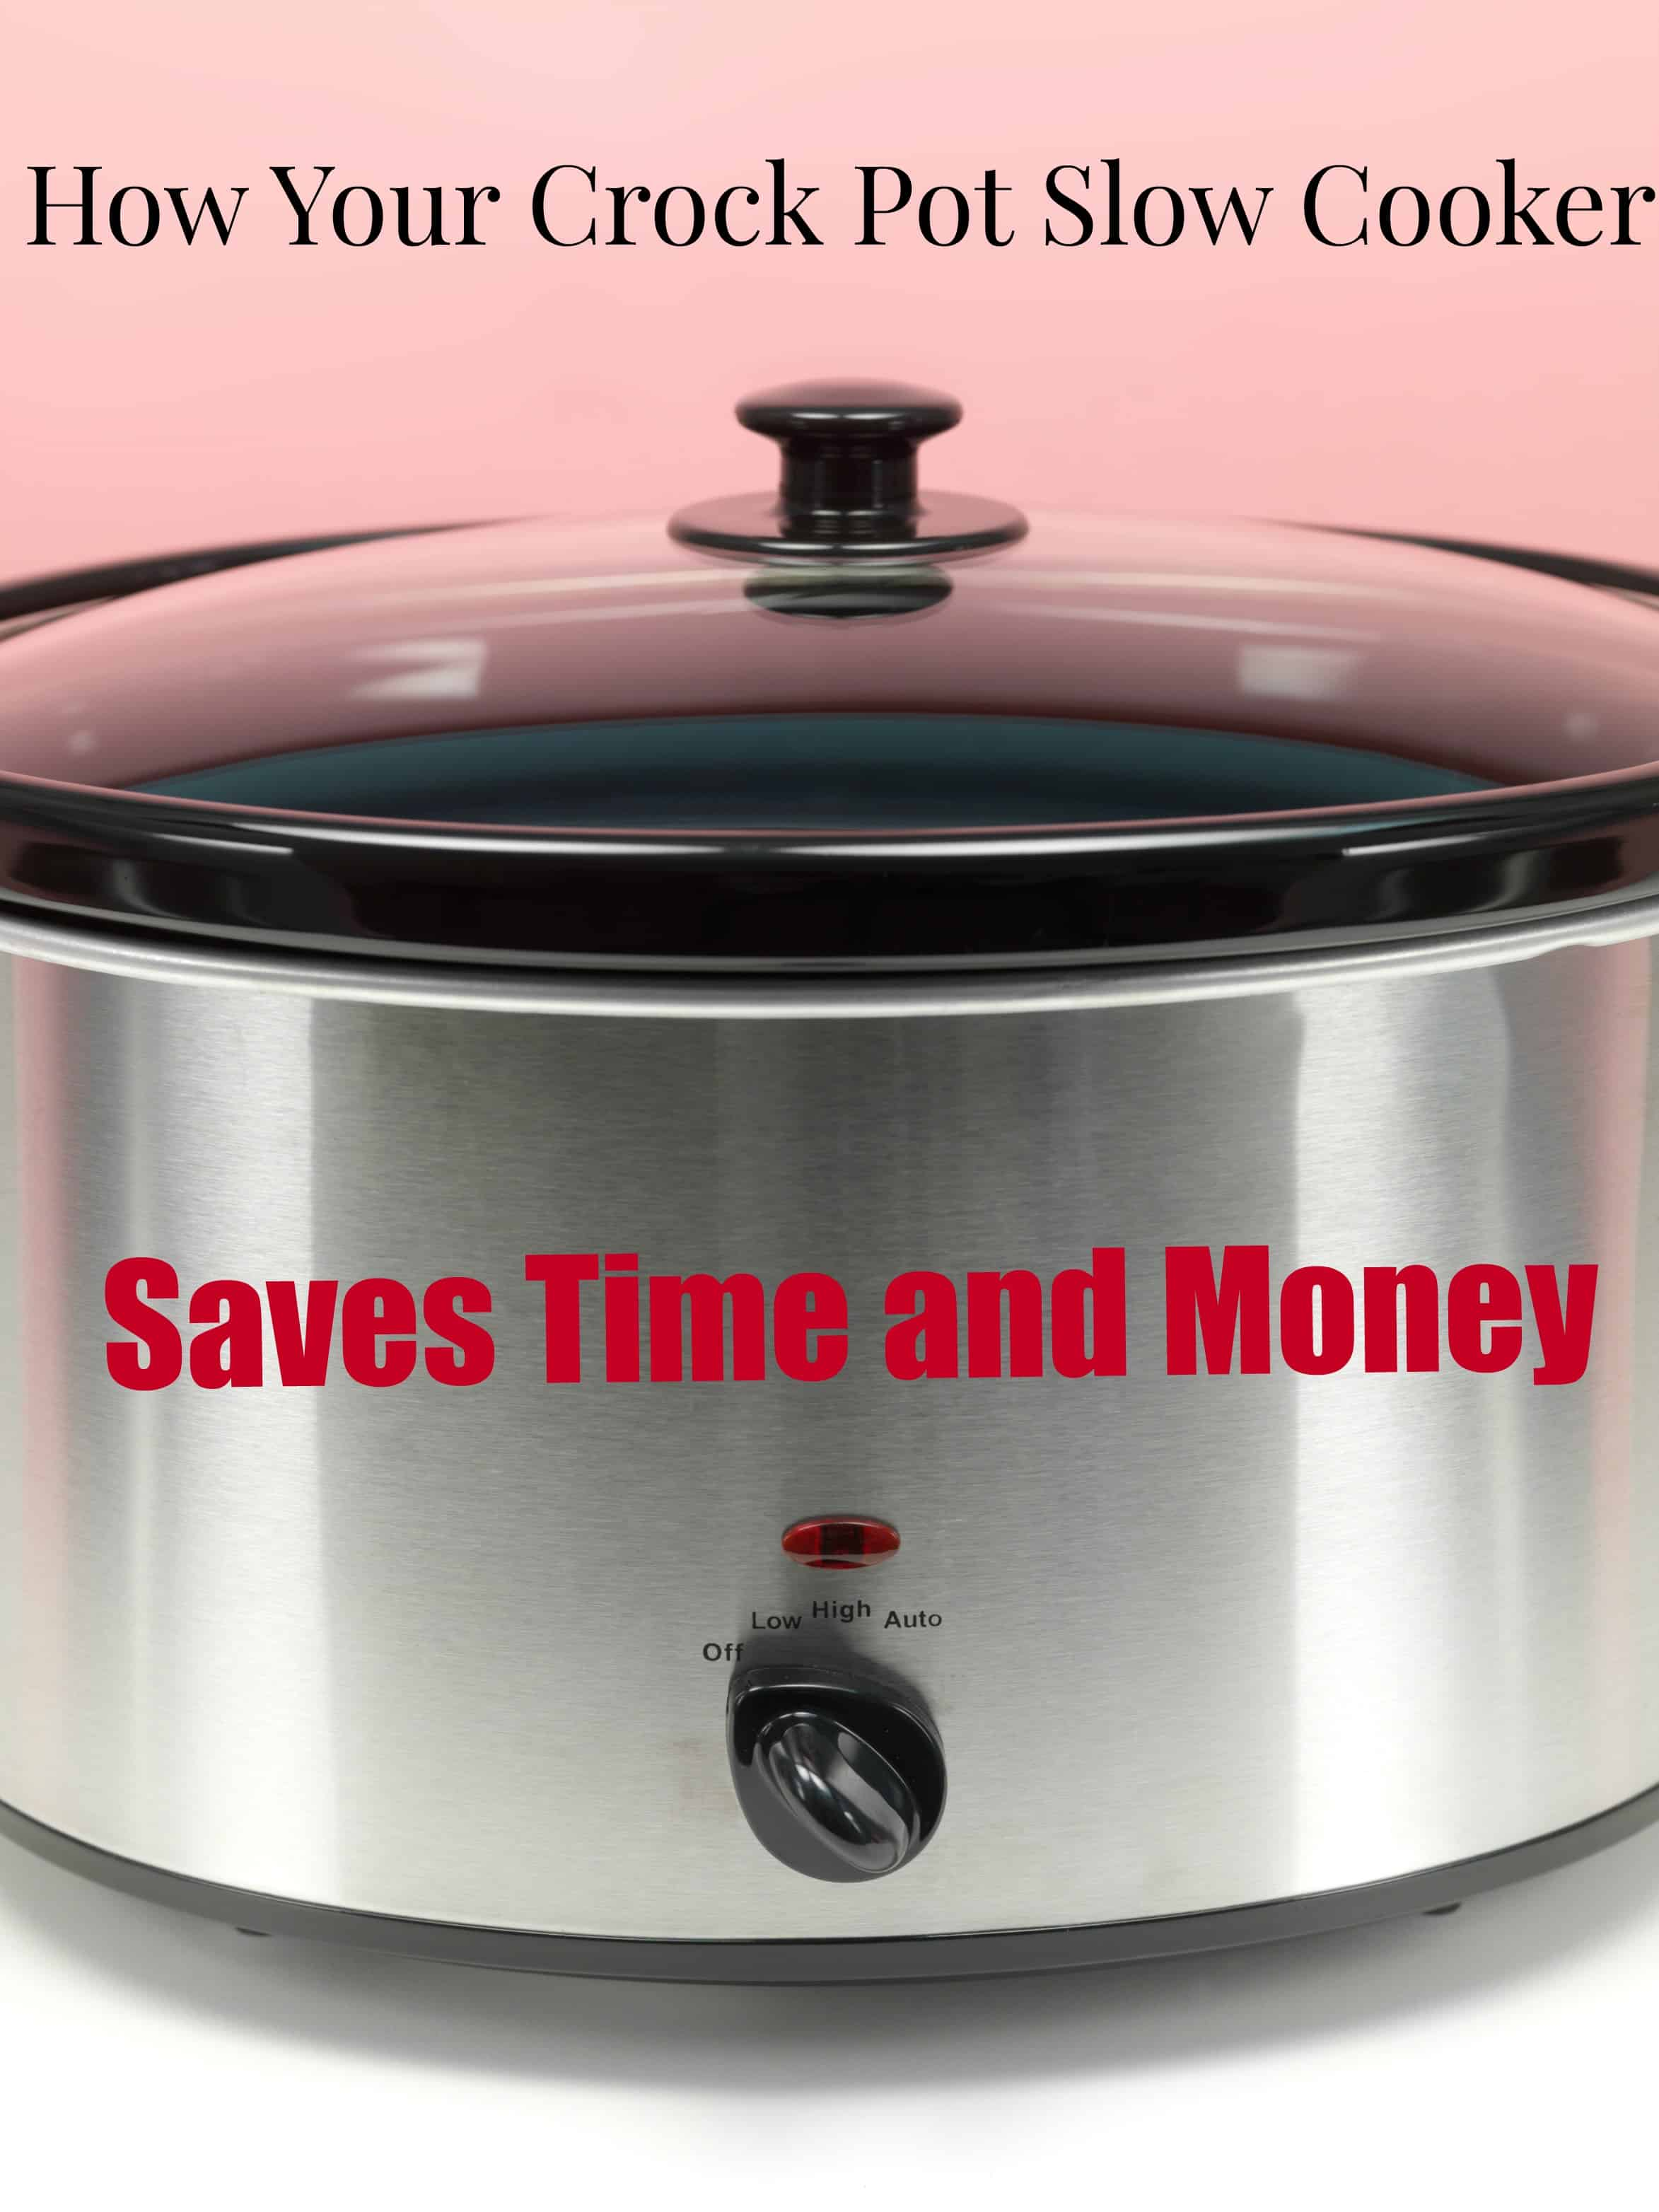 Use Your Crock Pot Slow Cooker